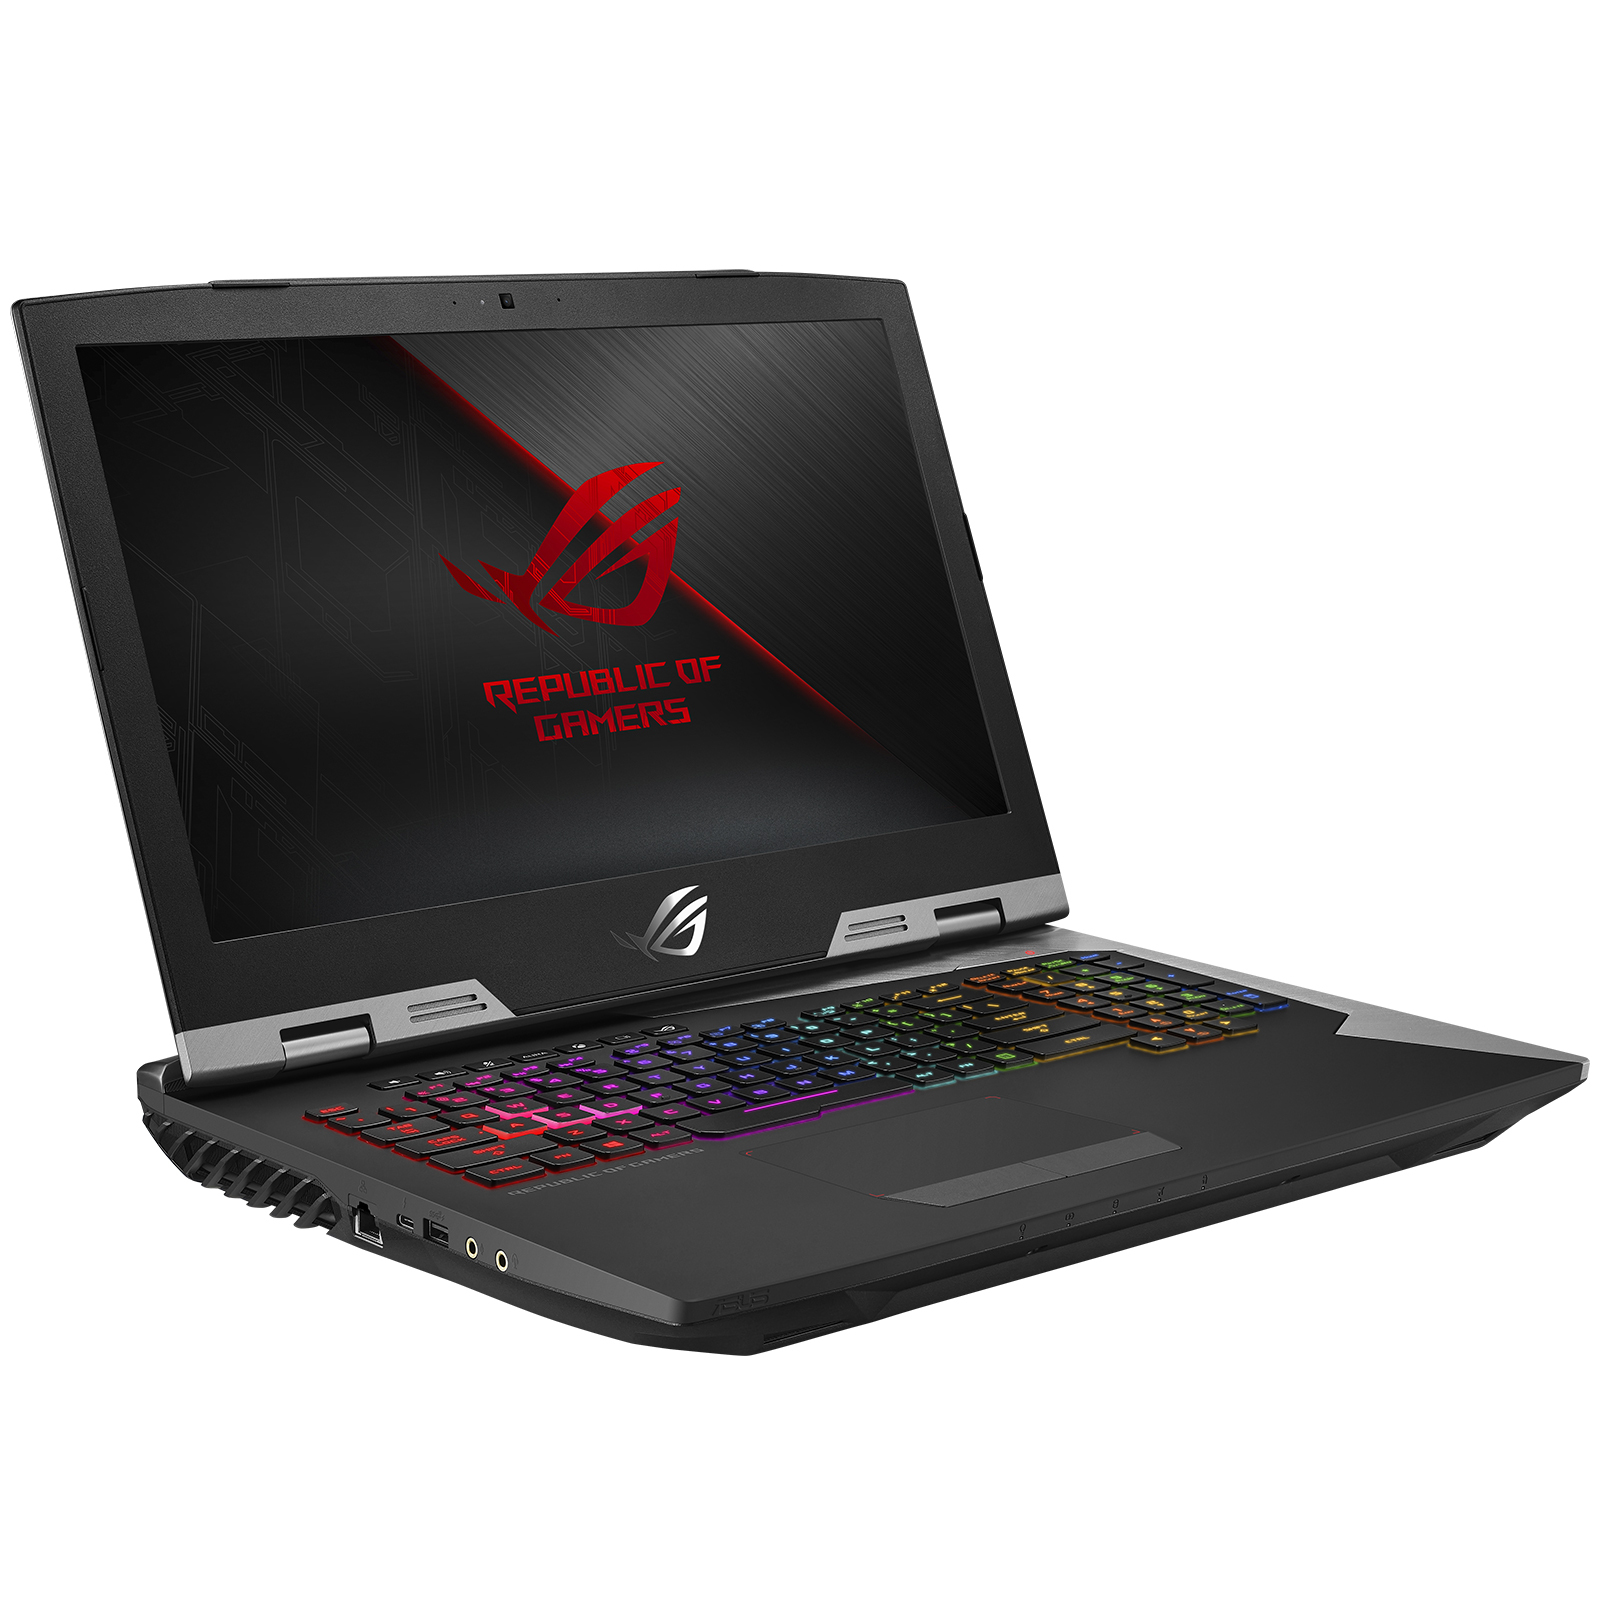 "PC portable ASUS ROG Griffin G703GI-E5083T Intel Core i7-8750H 16 Go SSD 512 Go (2x 256 Go) + SSHD 1 To 17.3"" LED Full HD 144 Hz G-SYNC NVIDIA GeForce GTX 1080 8 Go Wi-Fi AC/Bluetooth Webcam Windows 10 Famille 64 bits (garantie constructeur 2 ans)"